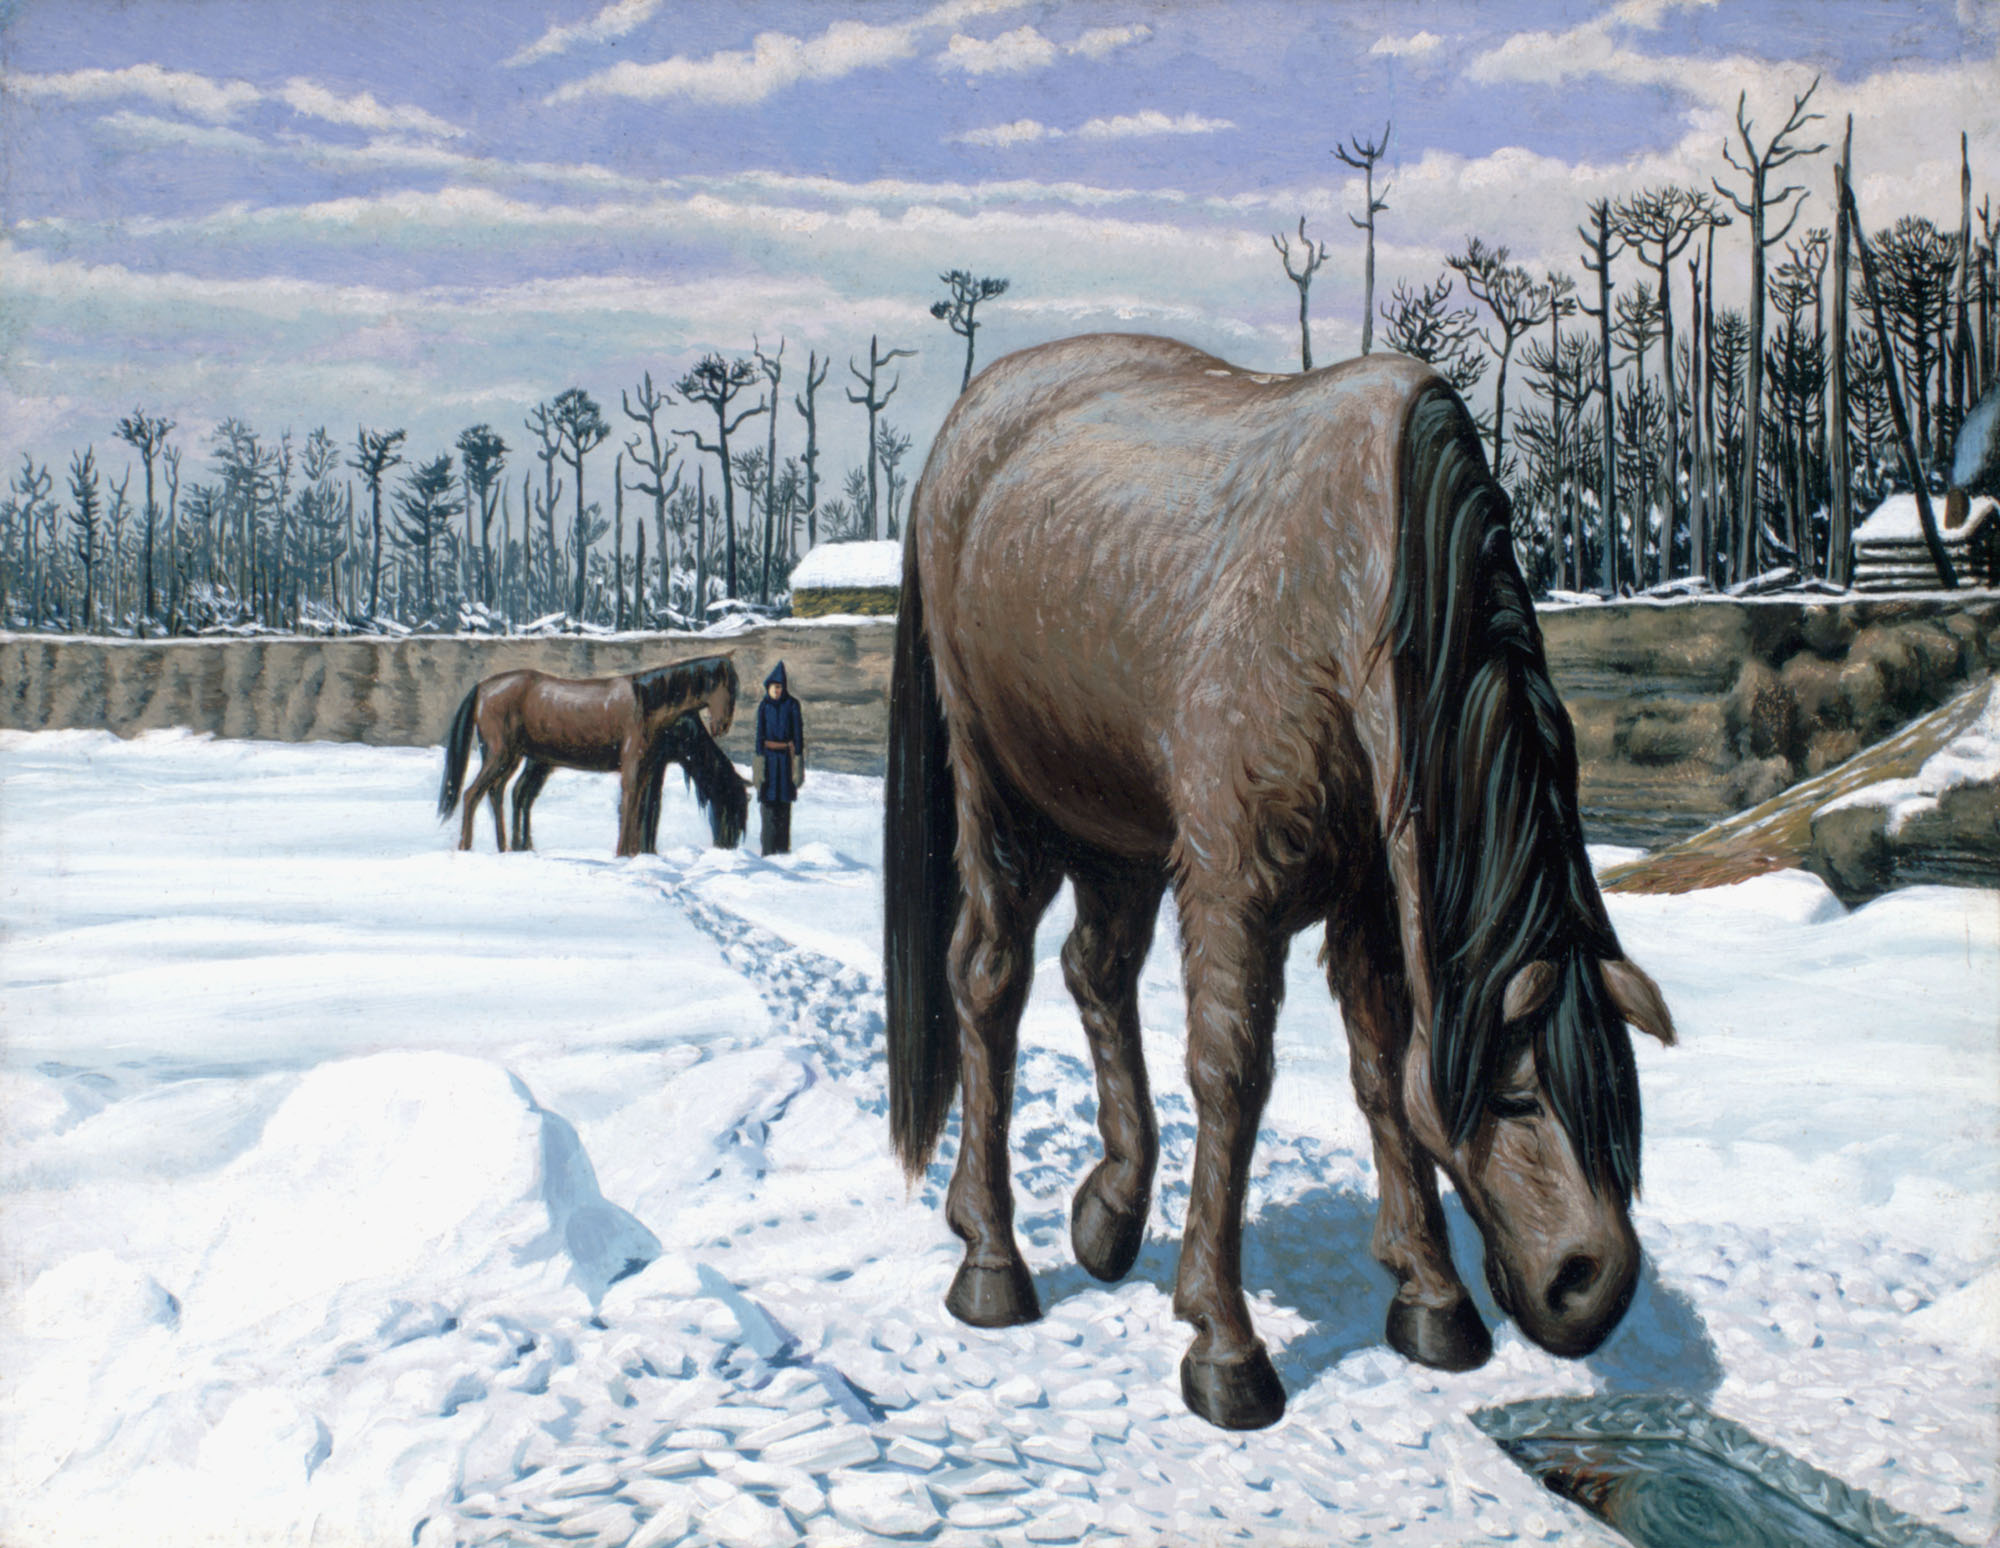 Colour oil on canvas of a horse standing on a frozen river leaning down to drink from a hole in the ice while another two  horses and a man stand in the background, with houses surrounded by trees lining the right side of the composition.